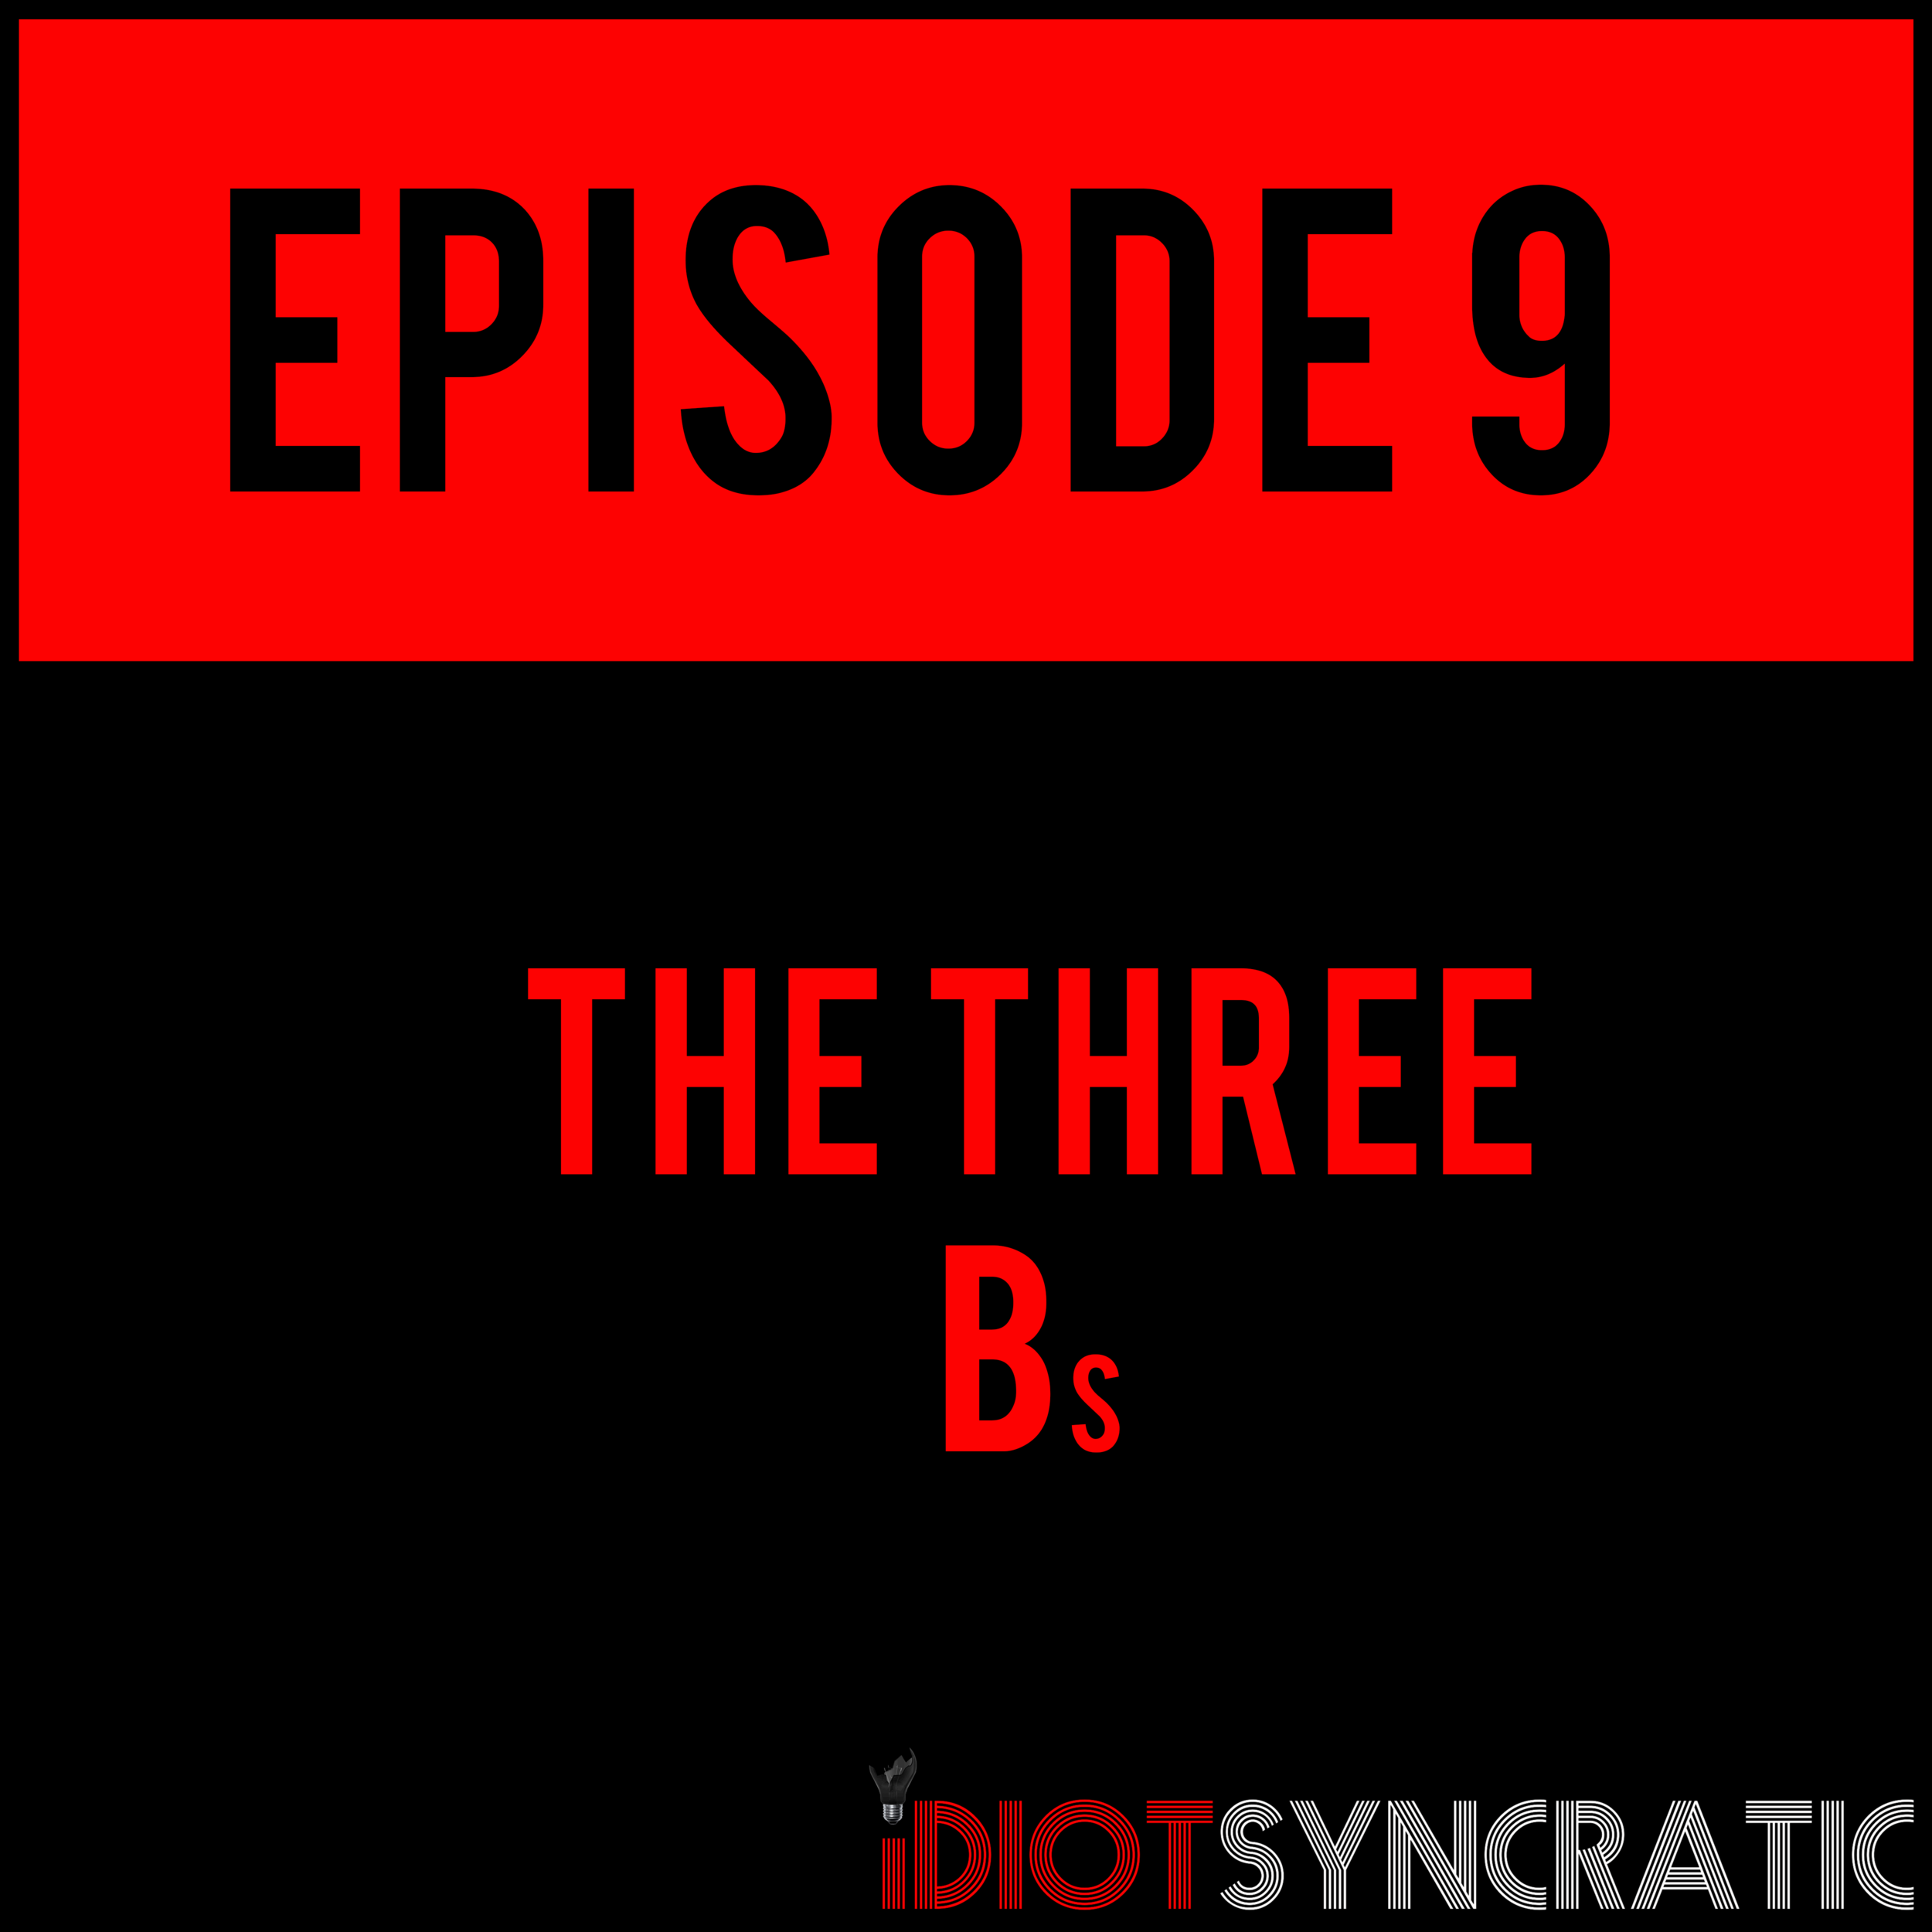 EPISODE 9 - THE THREE Bs - EPISODE 9 is live! Let's make fun of some Oregonianianianians and Logan Paul, together.